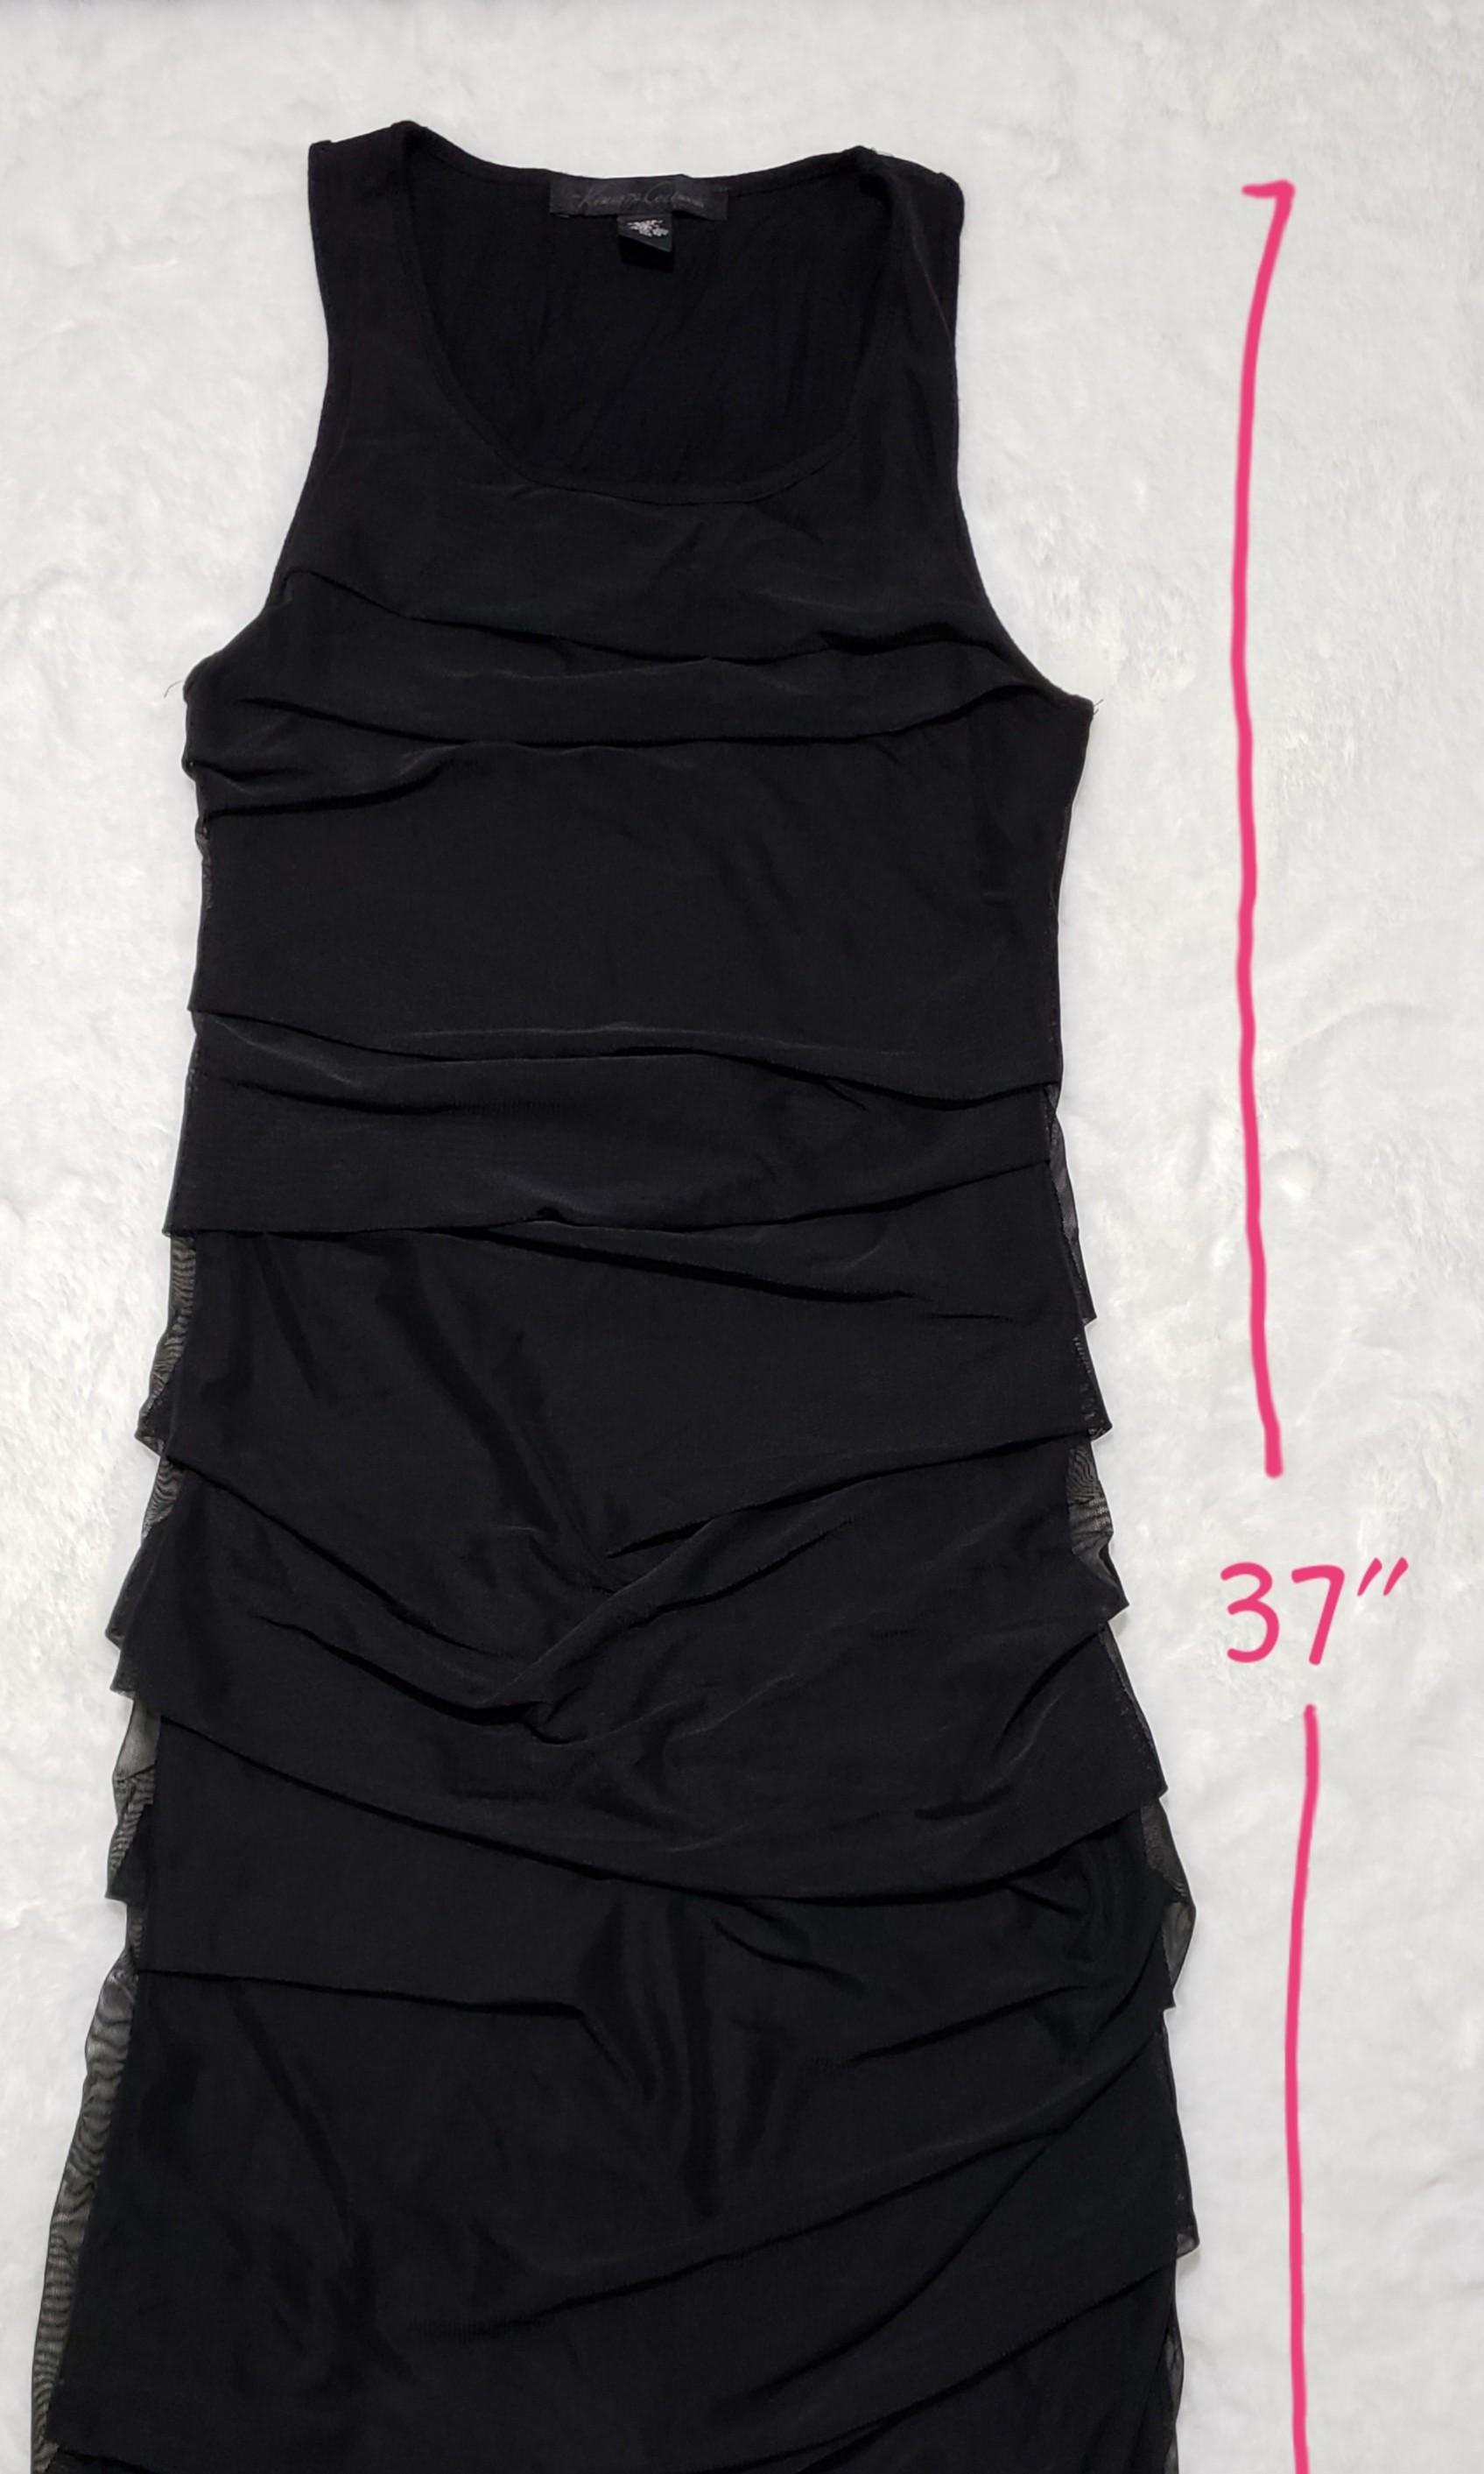 Kenneth Cole NY - black mesh overlay rouche mid dress